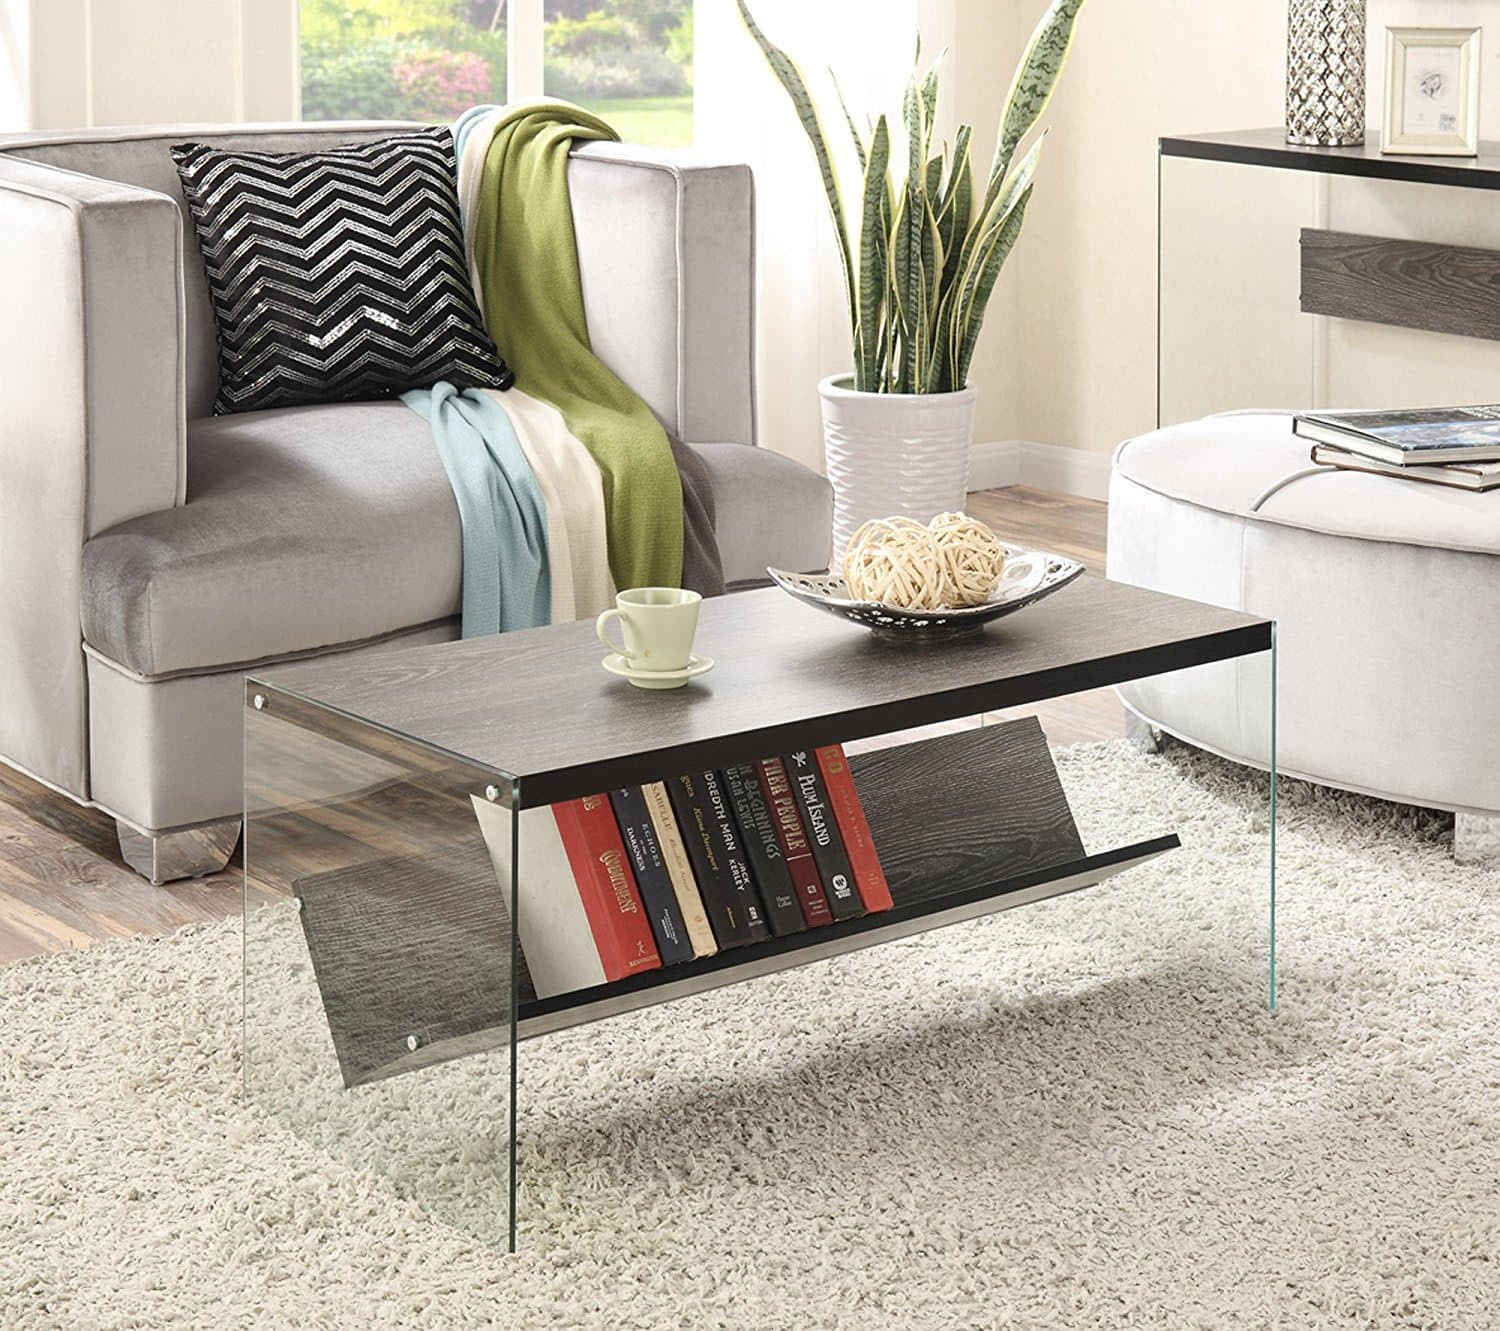 Cheap Coffee Tables Under $100 That Work For Every Style